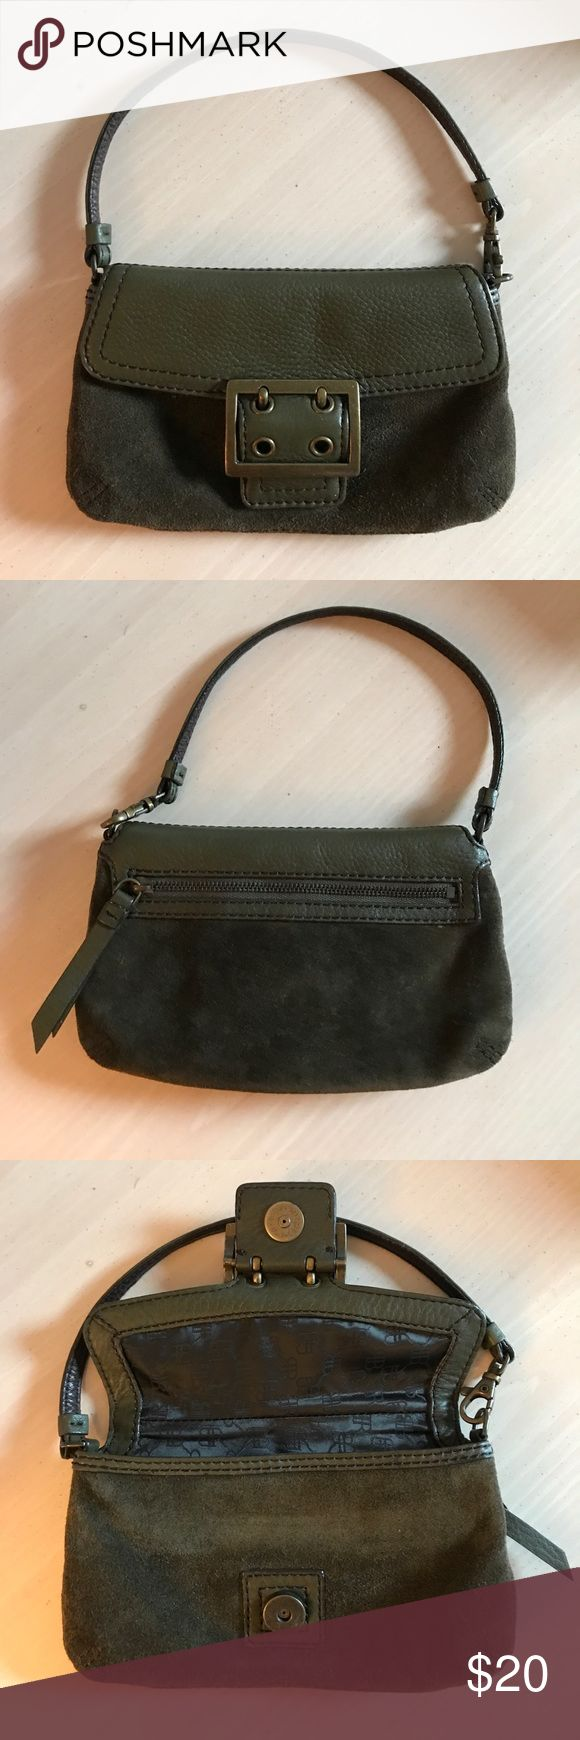 "Banana Republic Olive Green Wristlet Olive green suede wristlet from Banana Republic. 8"" x 5"" has two slots for credit cards inside and a zipper pocket outside. Buckle is for looks. It's actually a magnetic snap close. The strap can clip into two places for two different looks. Excellent condition! Banana Republic Bags Clutches & Wristlets"